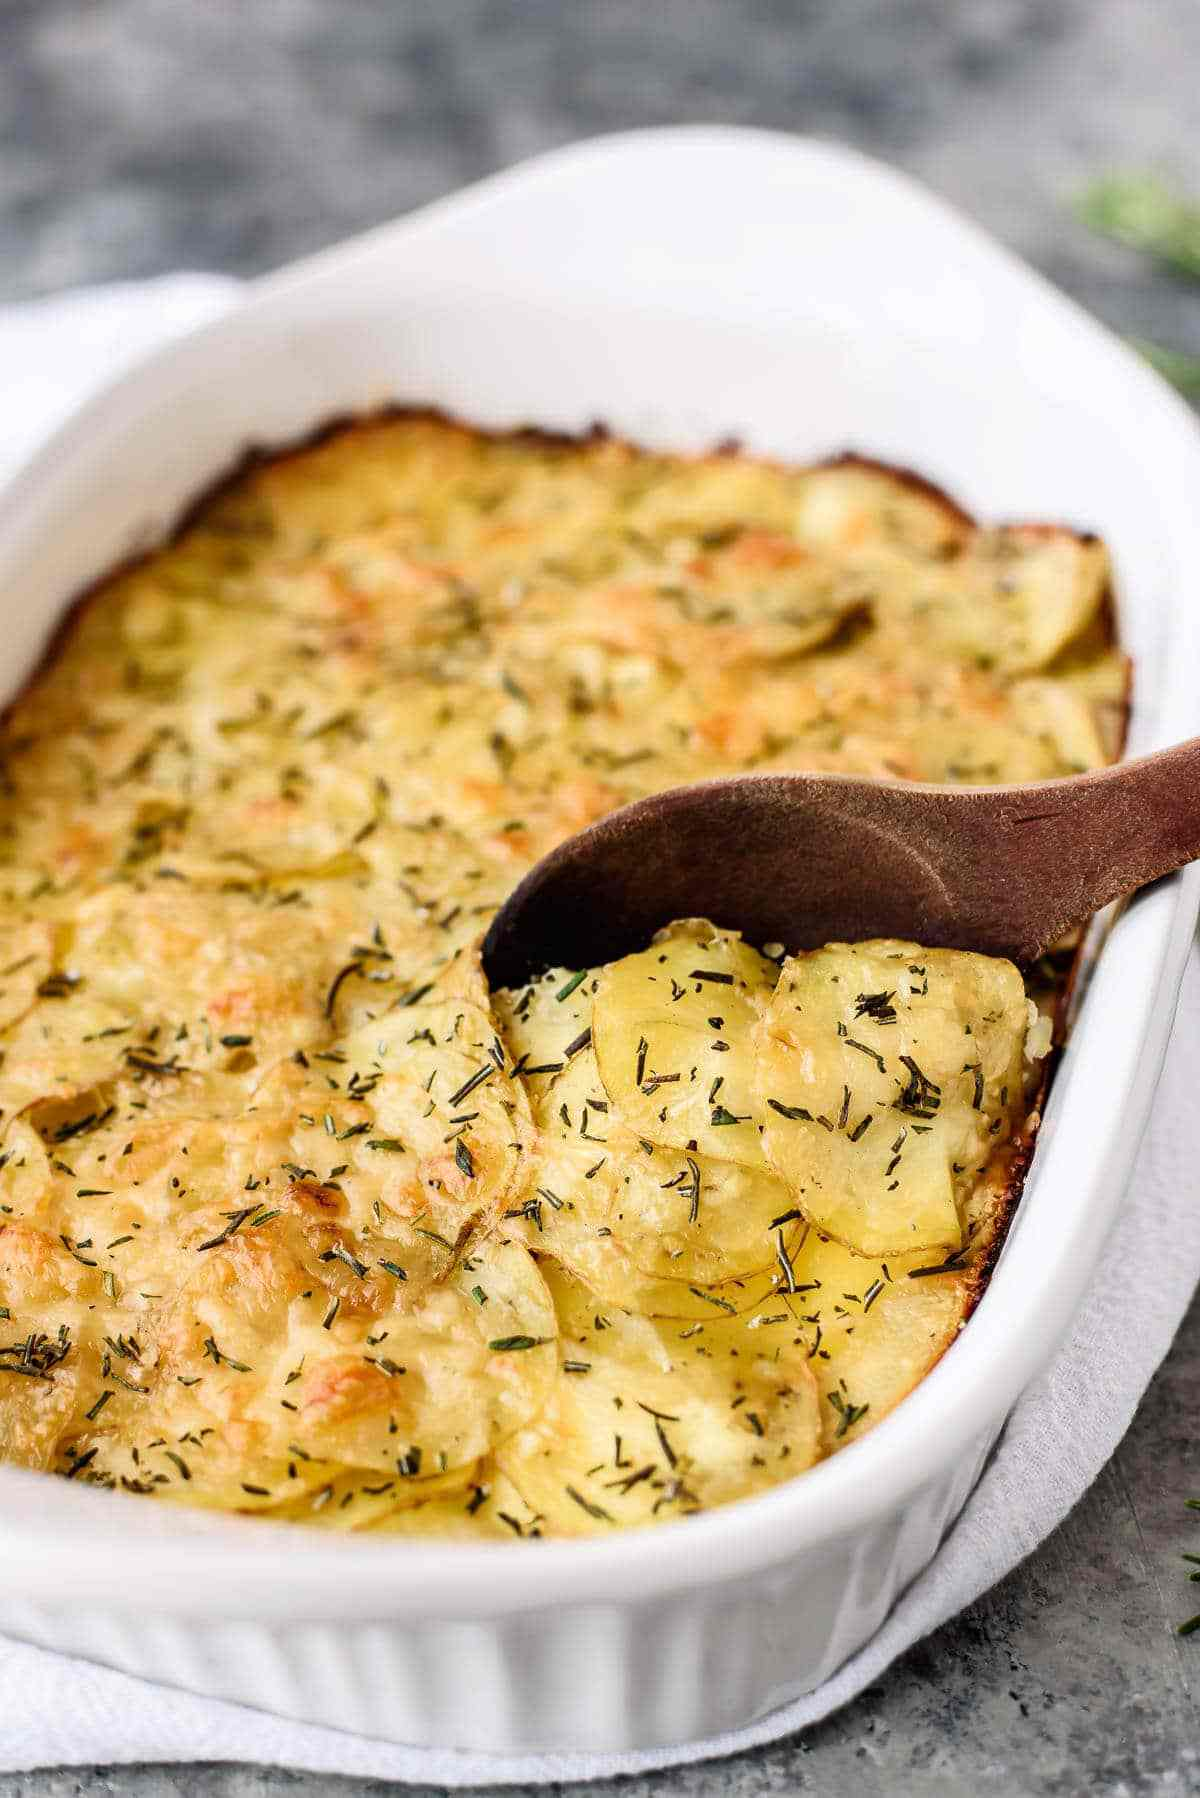 Homemade scalloped potatoes in a baking dish with a wooden spoon